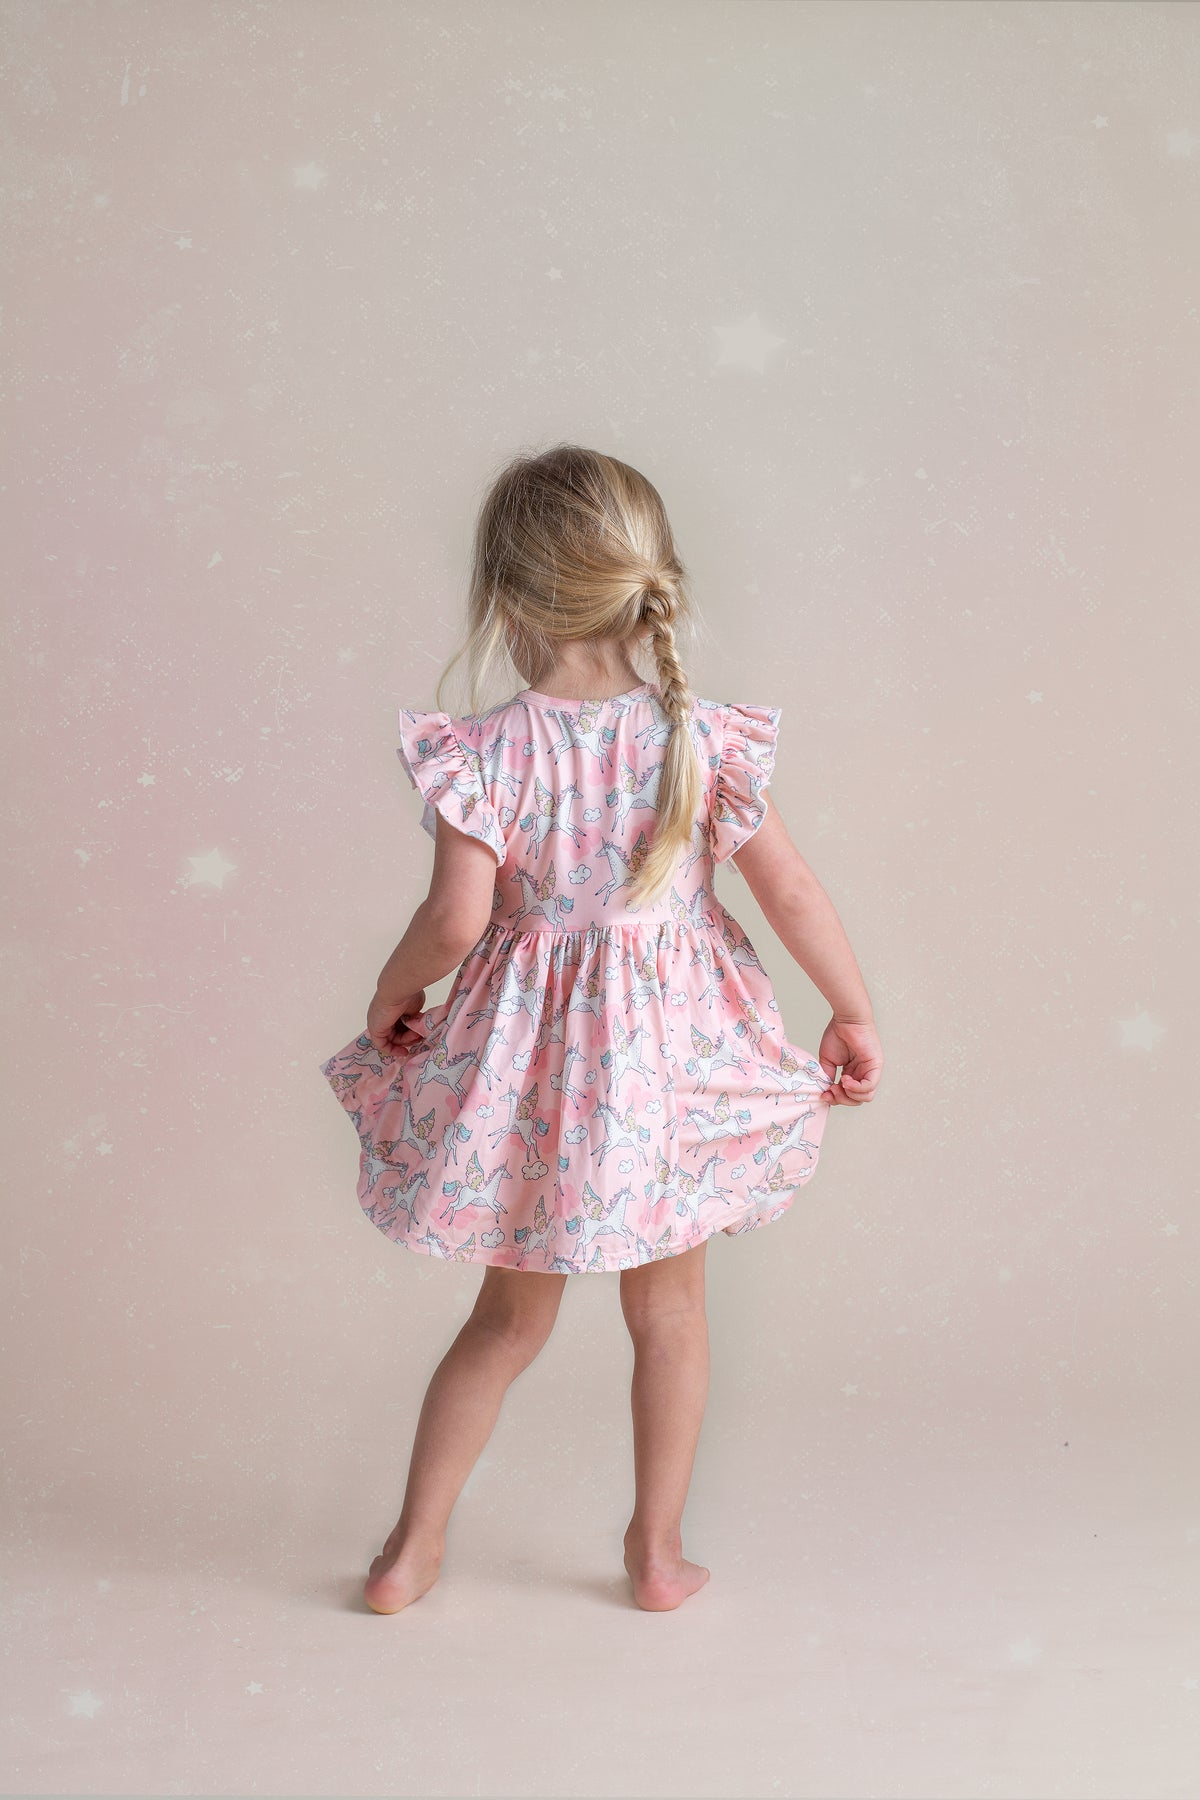 Adeline Dress - Fairytale Frolick